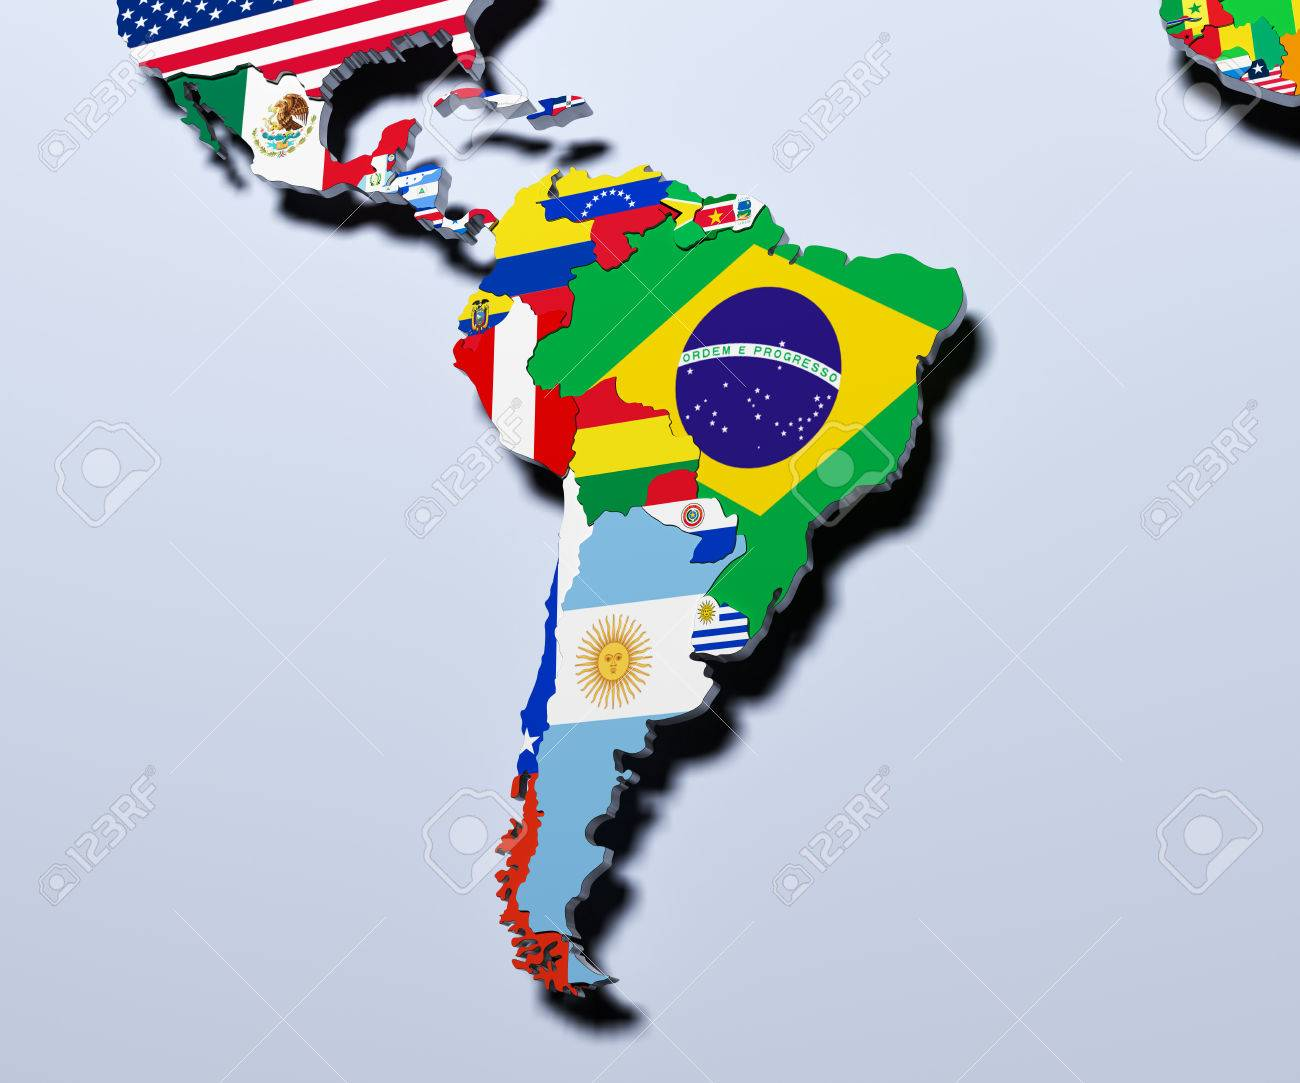 South America Map 3d Illustration Stock Photo Picture And Royalty